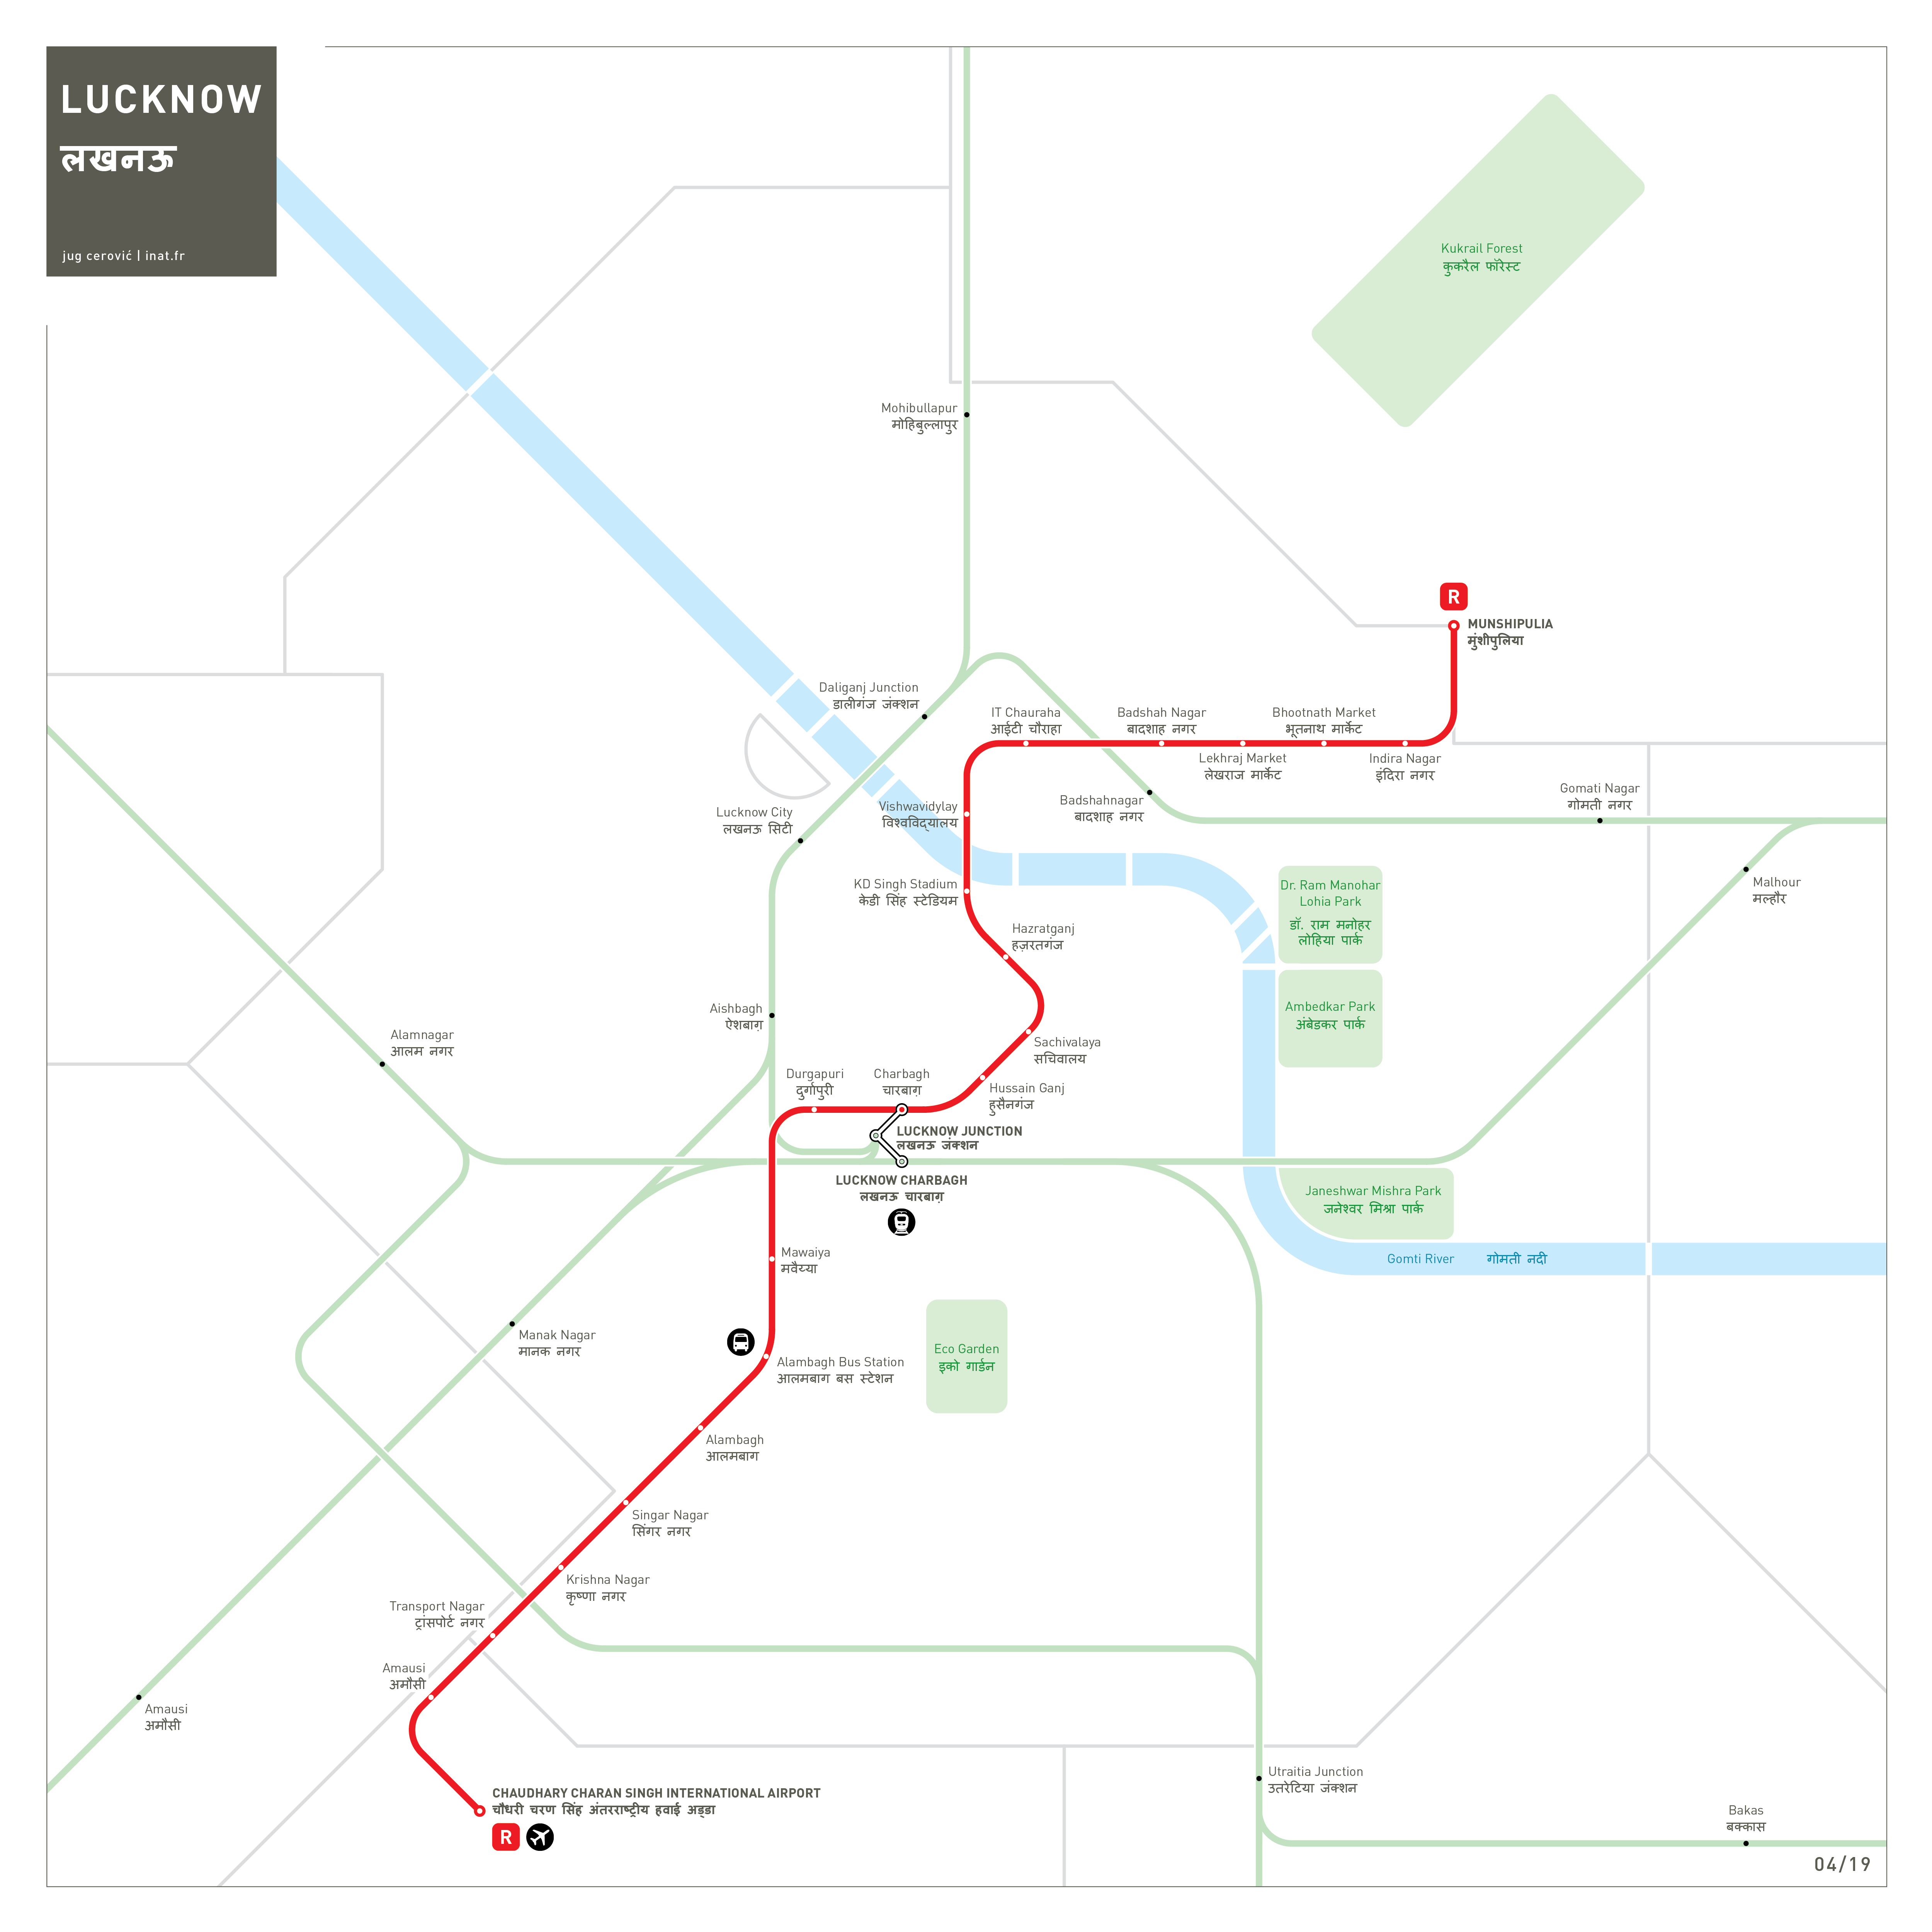 Lucknow Metro Map.Lucknow Metro Map Inat